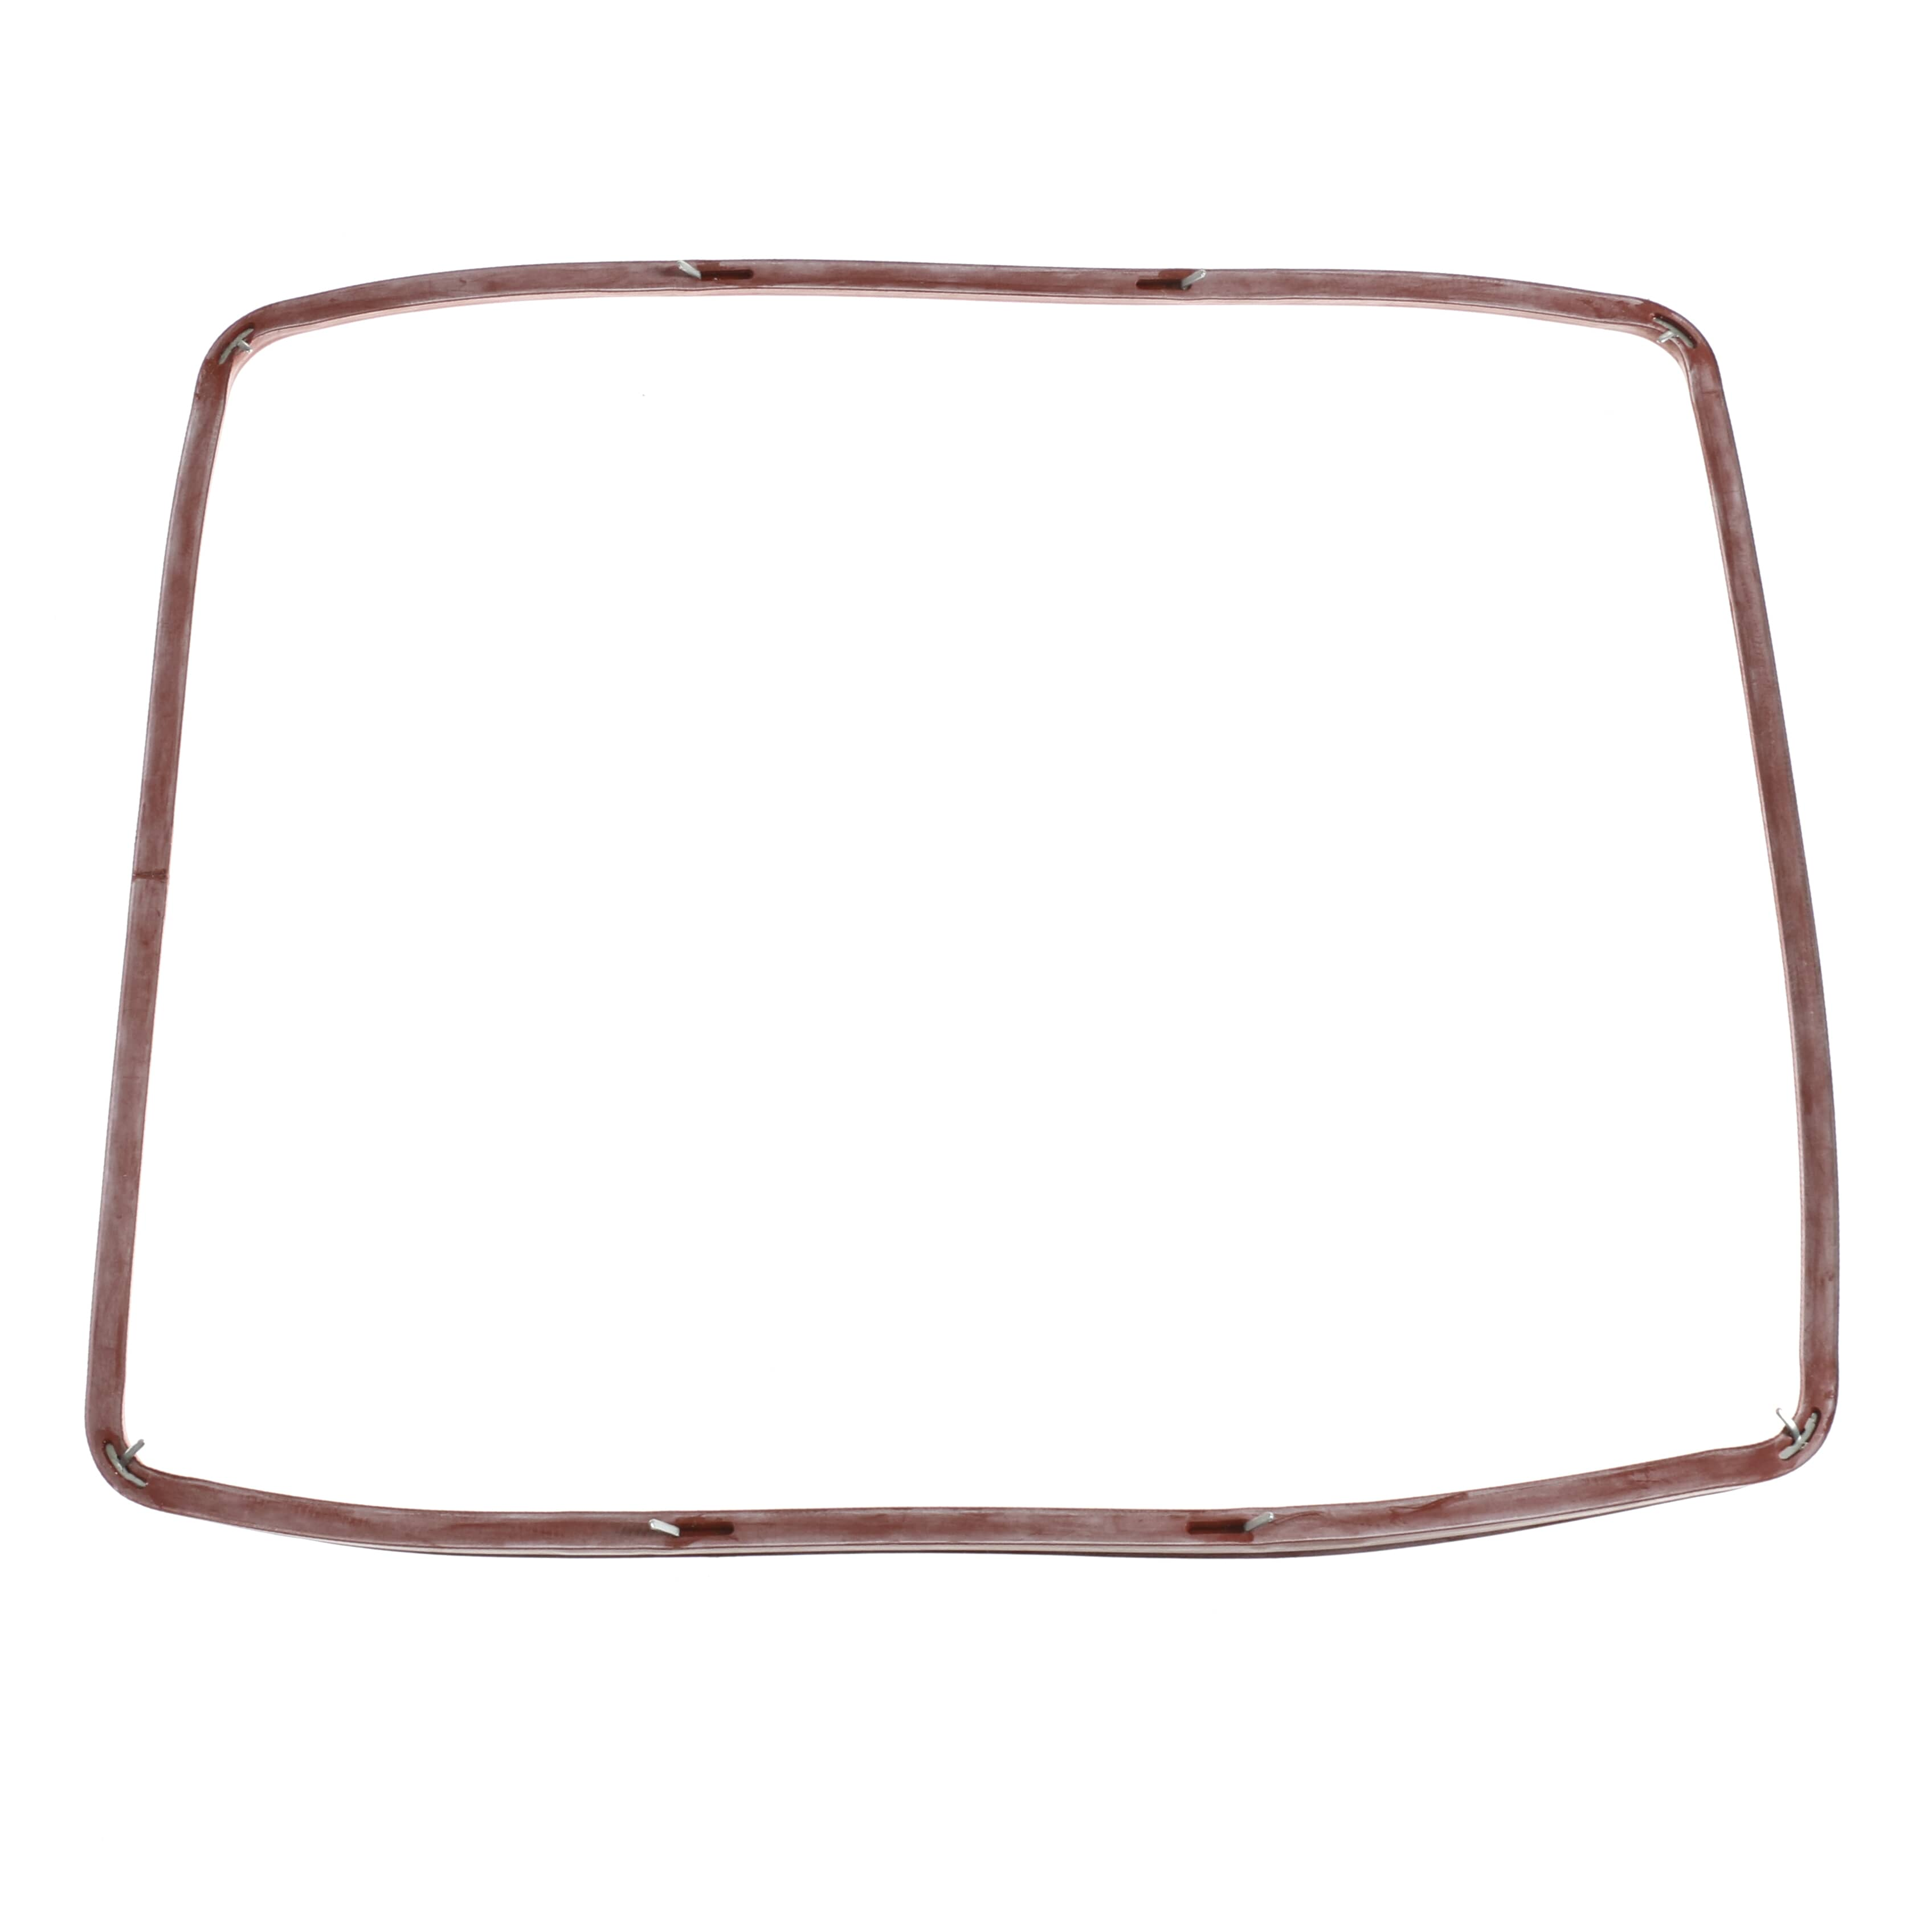 EquipexH03005GASKET